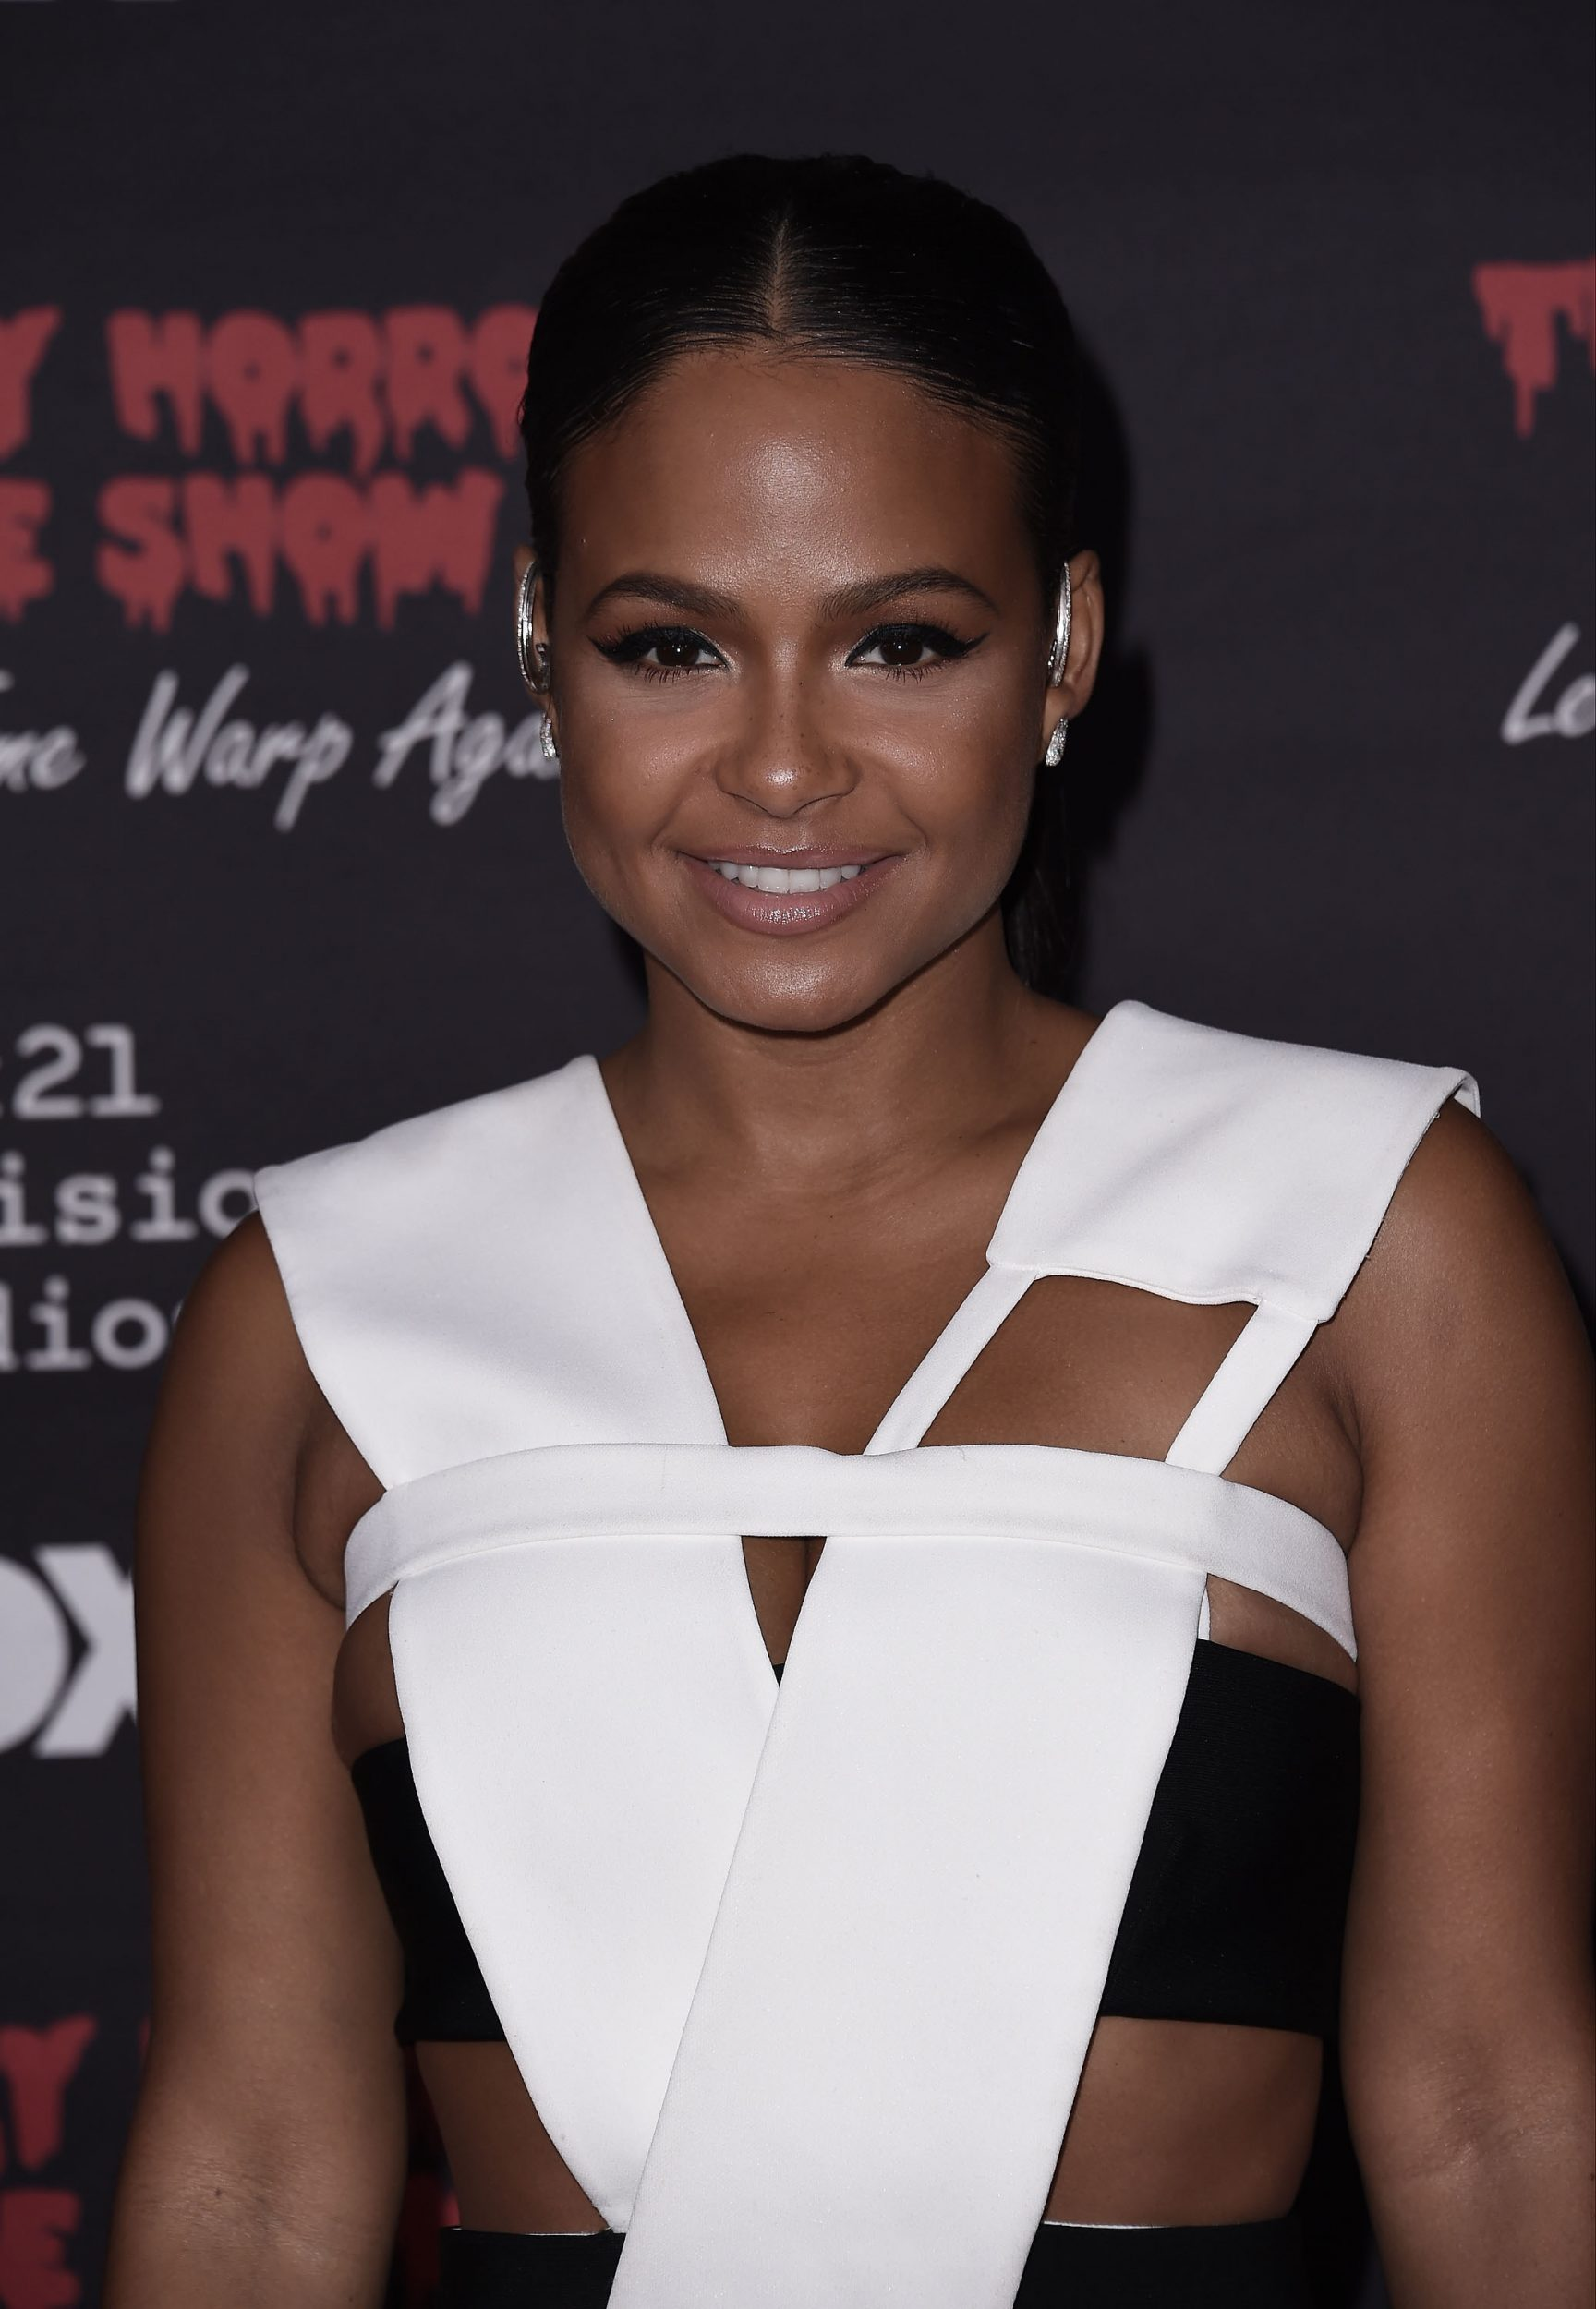 THE ROCKY HORROR PICTURE SHOW: Let's Do The Time Warp Again (and Transylvanians!): Cast member Christina Milian arrives at THE ROCKY HORROR PICTURE SHOW: Let's Do The Time Warp Again (and Transylvanians!) premiere party red carpet at The Roxy on Thursday, Oct. 13, in Los Angeles, CA. THE ROCKY HORROR PICTURE SHOW: Let's Do The Time Warp Again (And Transylvanians!) premieres Thursday, Oct. 20 (8:00-10:00 PM ET/PT) on FOX. © 2016 FOX BROADCASTING CR: Scott Kirkland/FOX